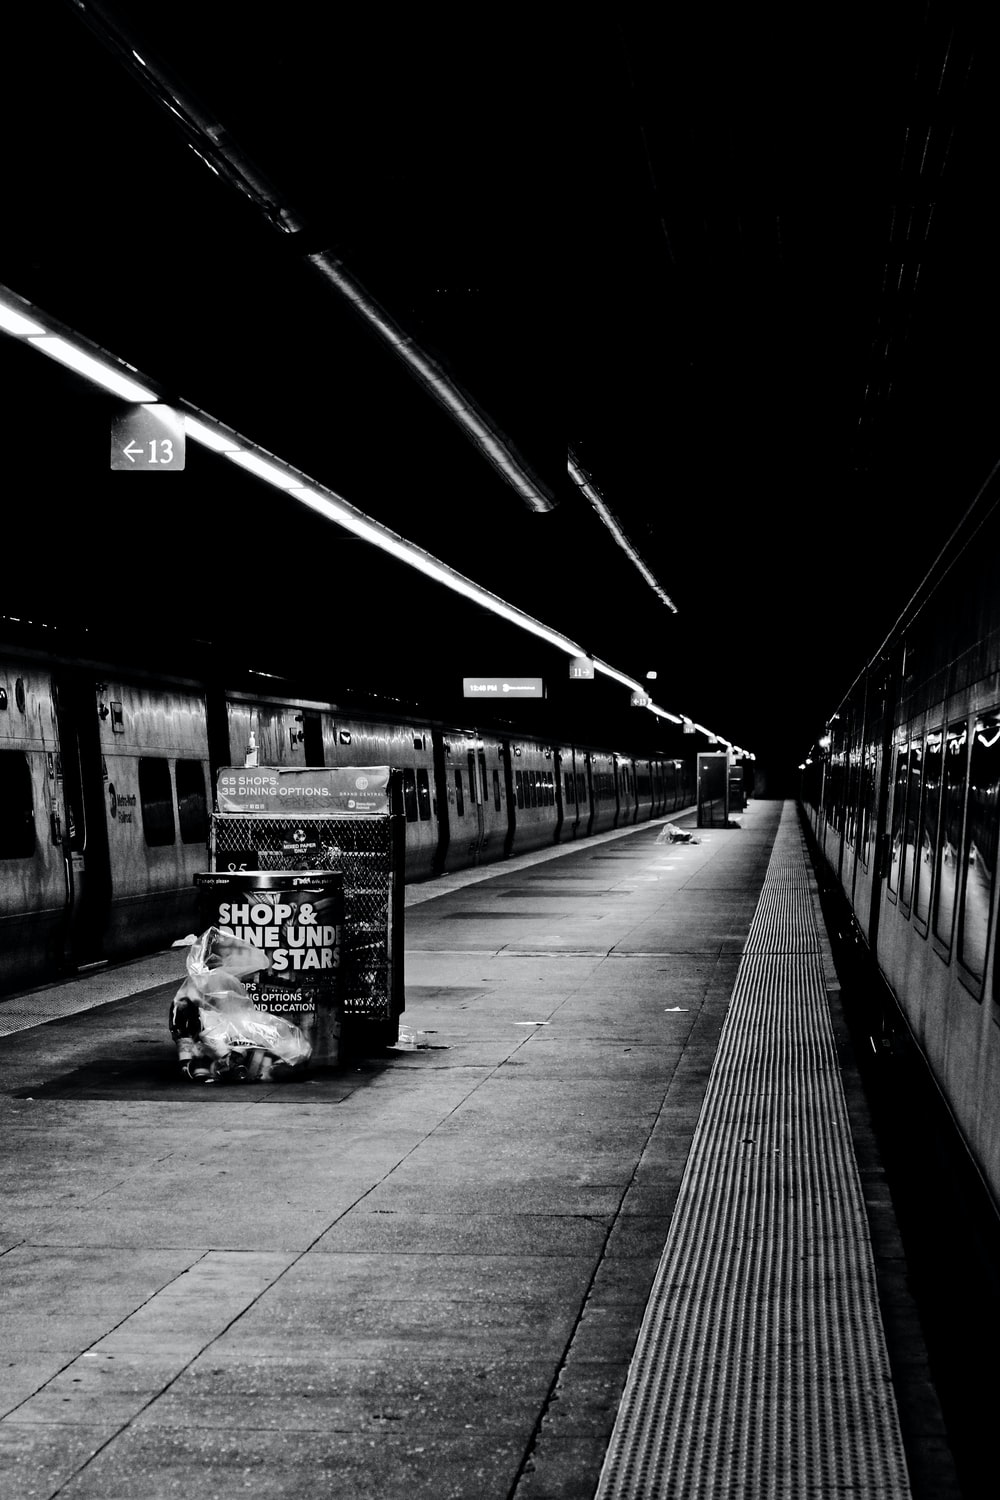 grayscale photo of a train station